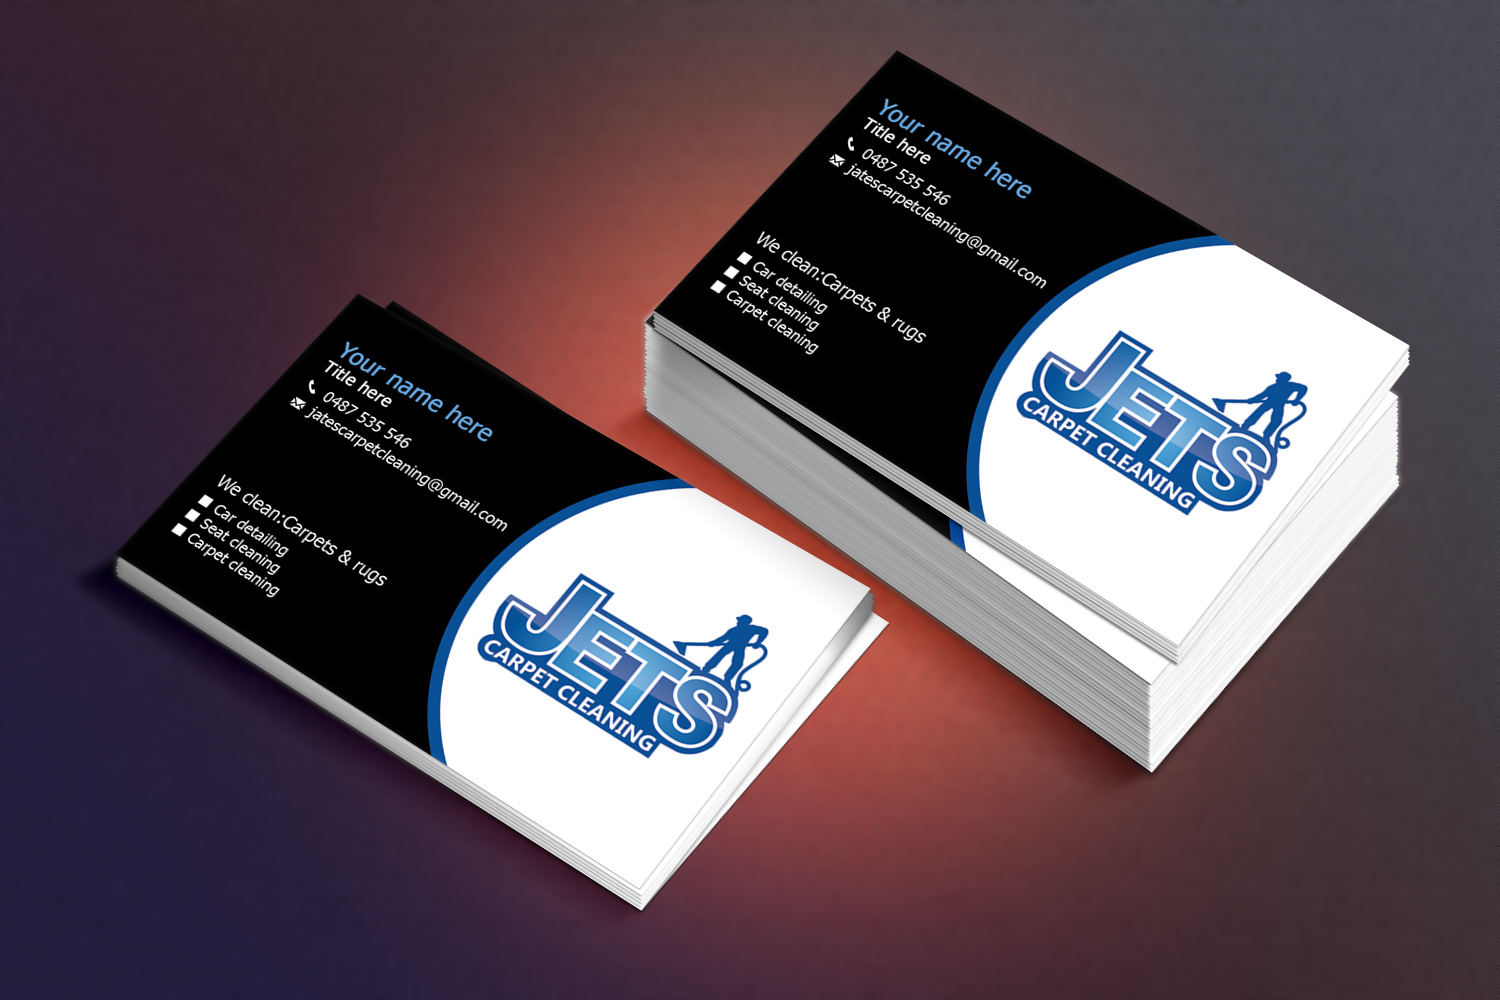 Carpet cleaning business card ideas carpet vidalondon business card design design 6668768 submitted to carpet cleaning car deling baanklon Gallery